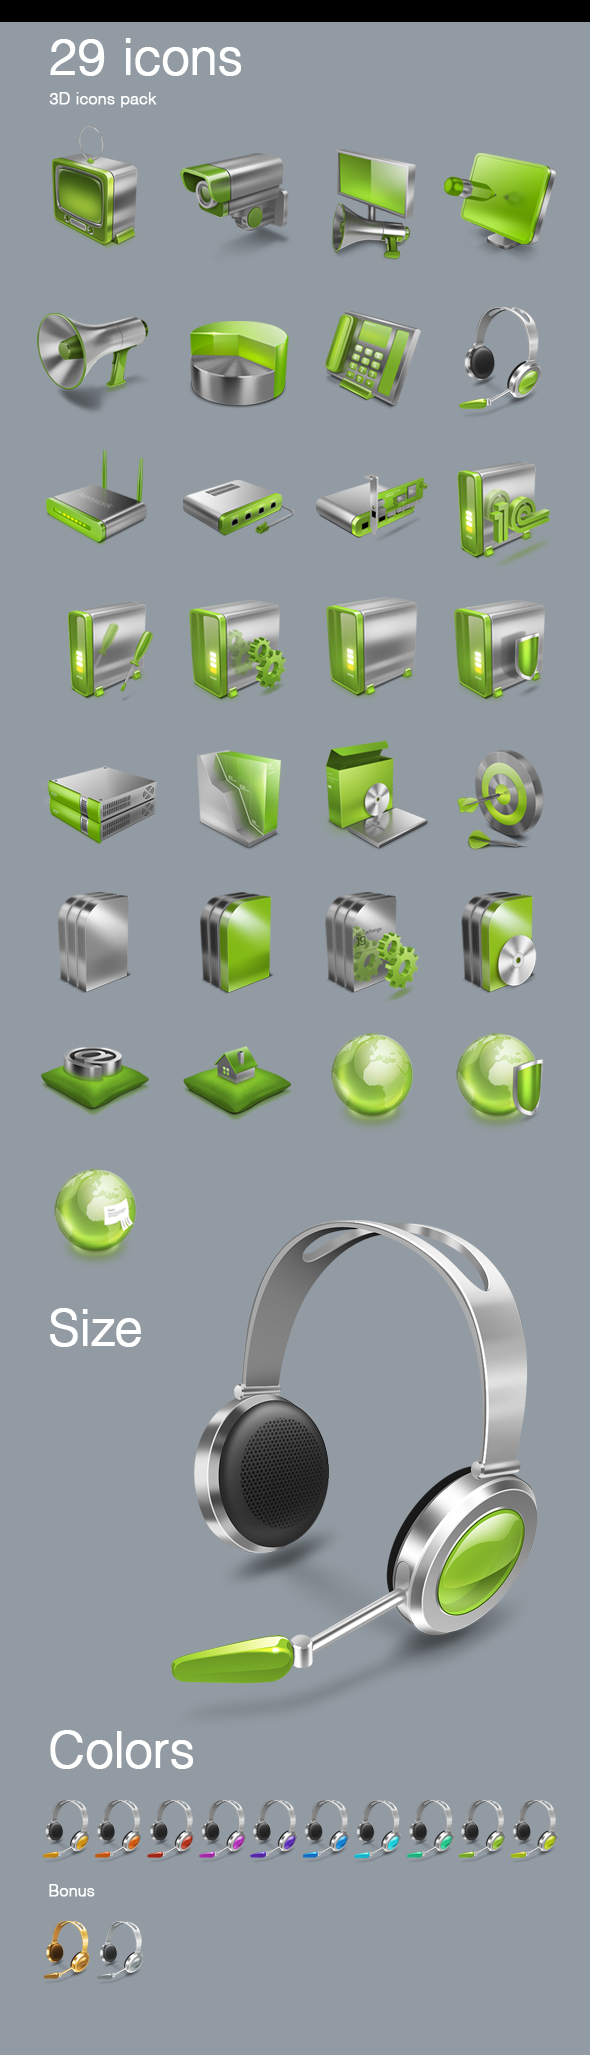 3D glosy icons sale